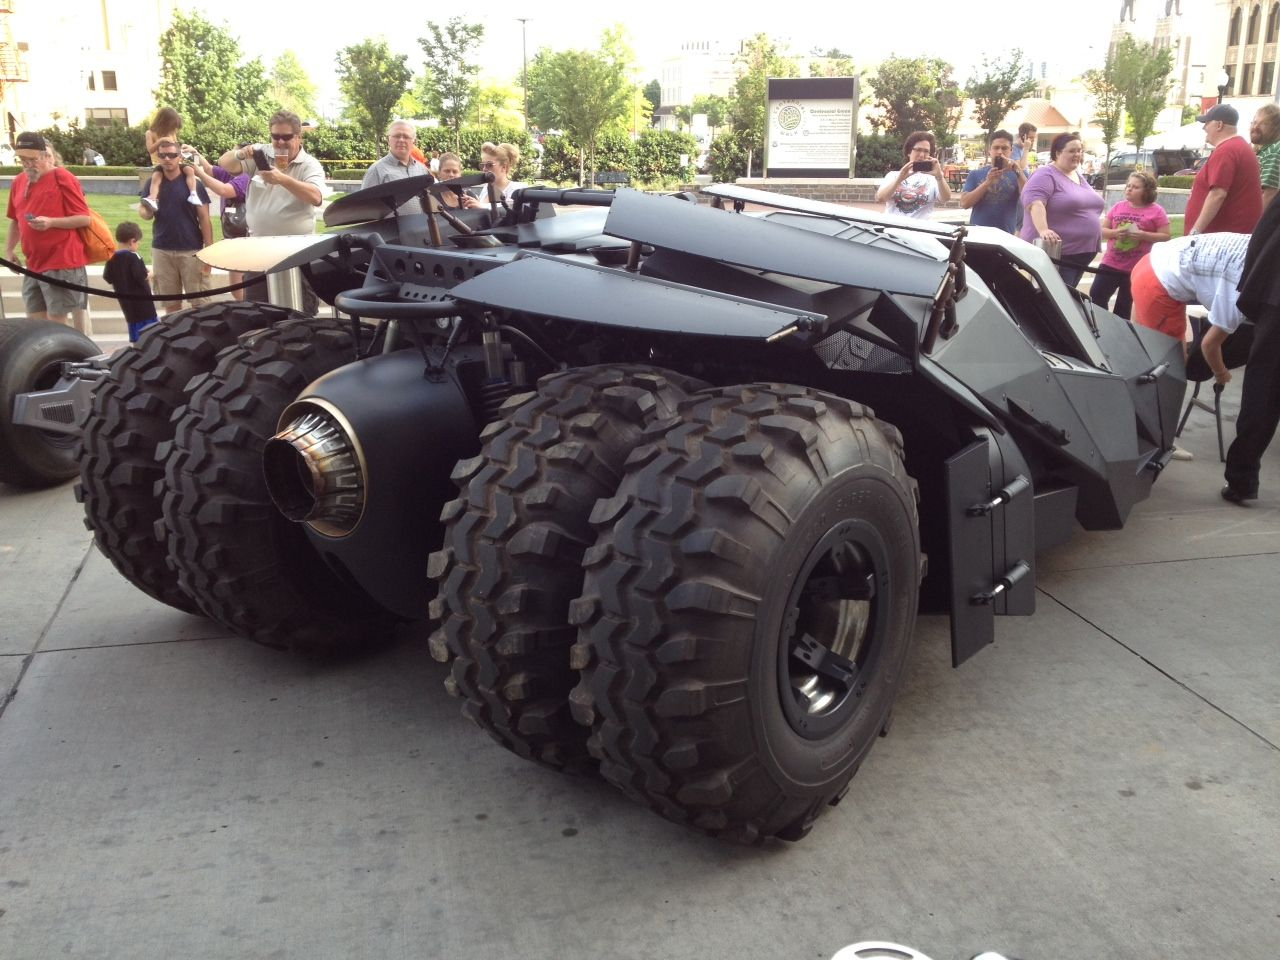 THE DARK KNIGHT RISES Tumbler and Bat-Pod Images | Collider